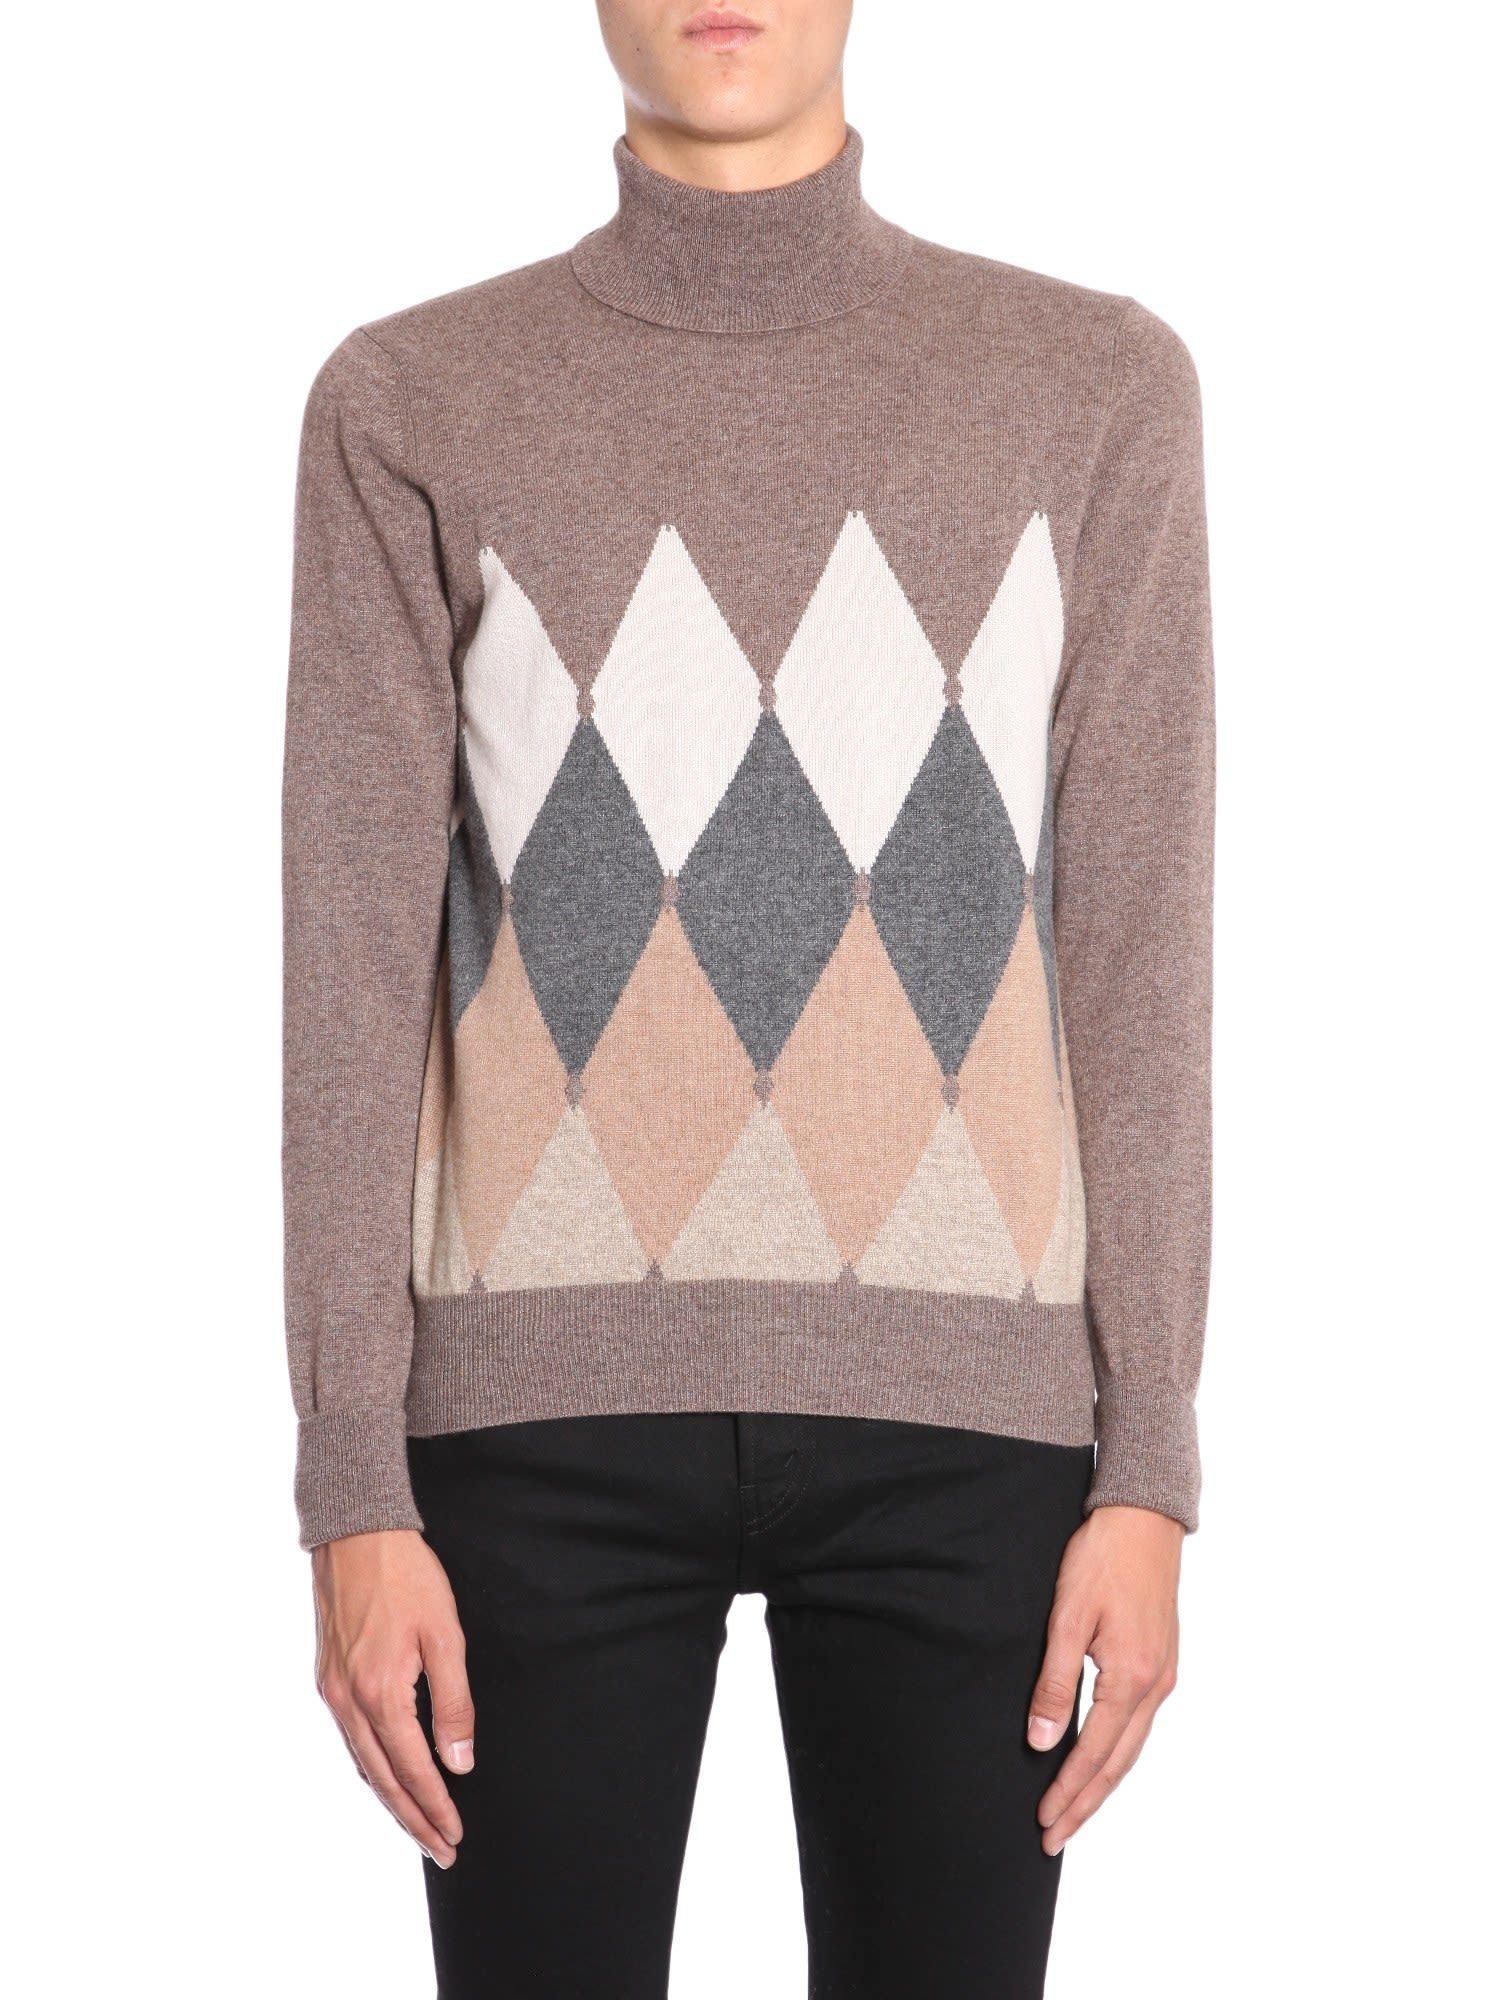 Ballantyne argyle knit sweater | メンズ